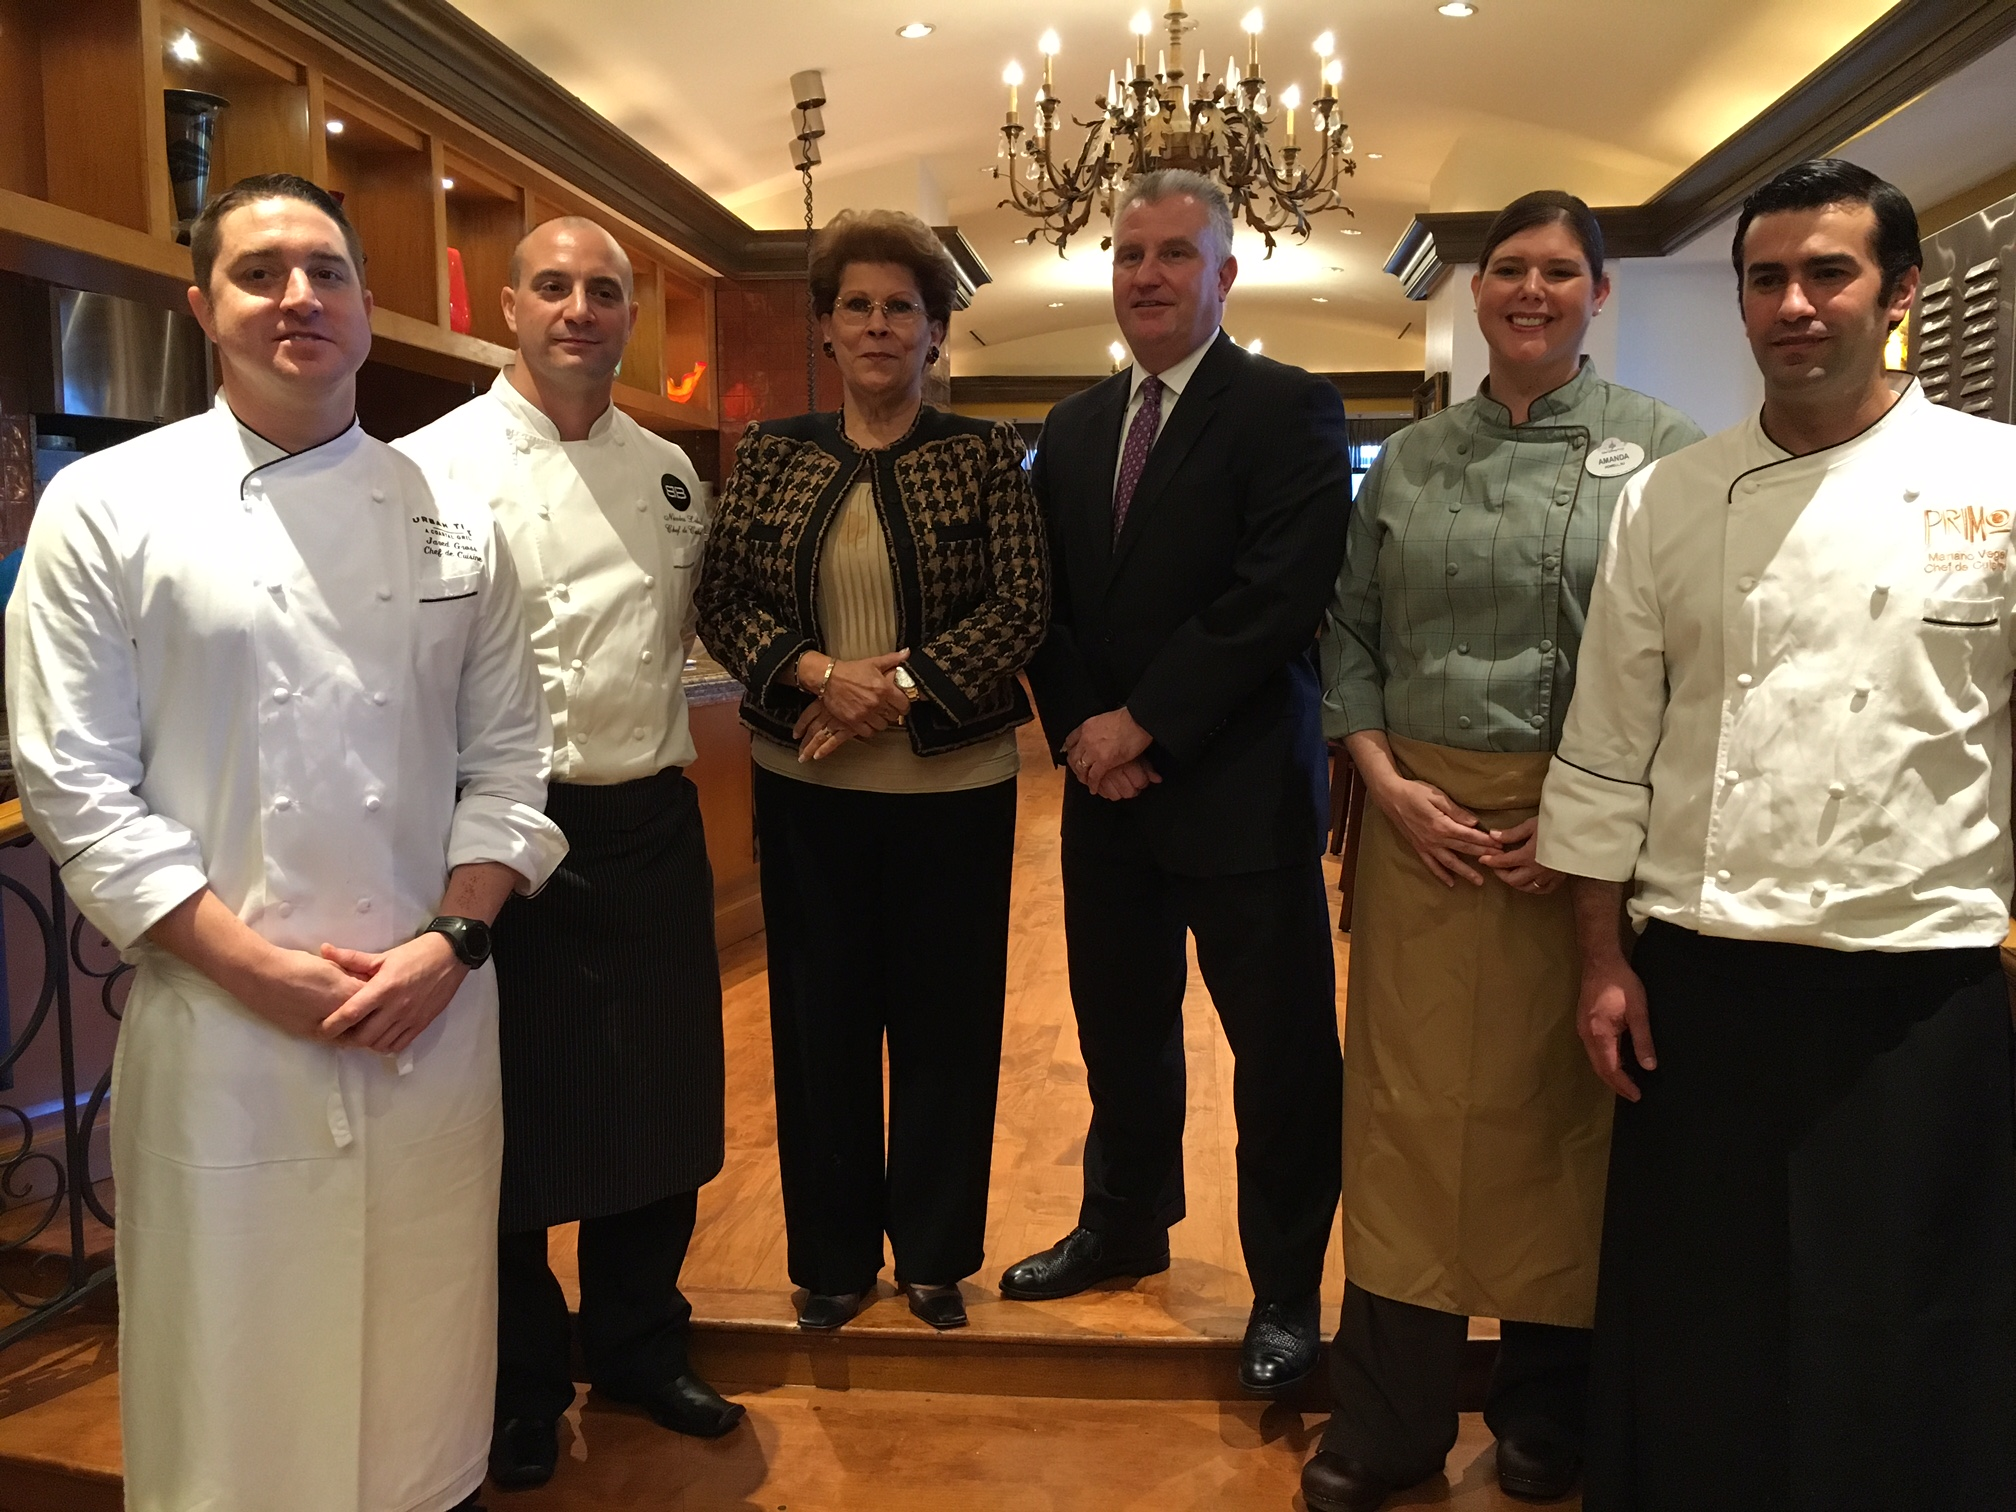 [PHOTO] 2016 Chef's Gala Preview